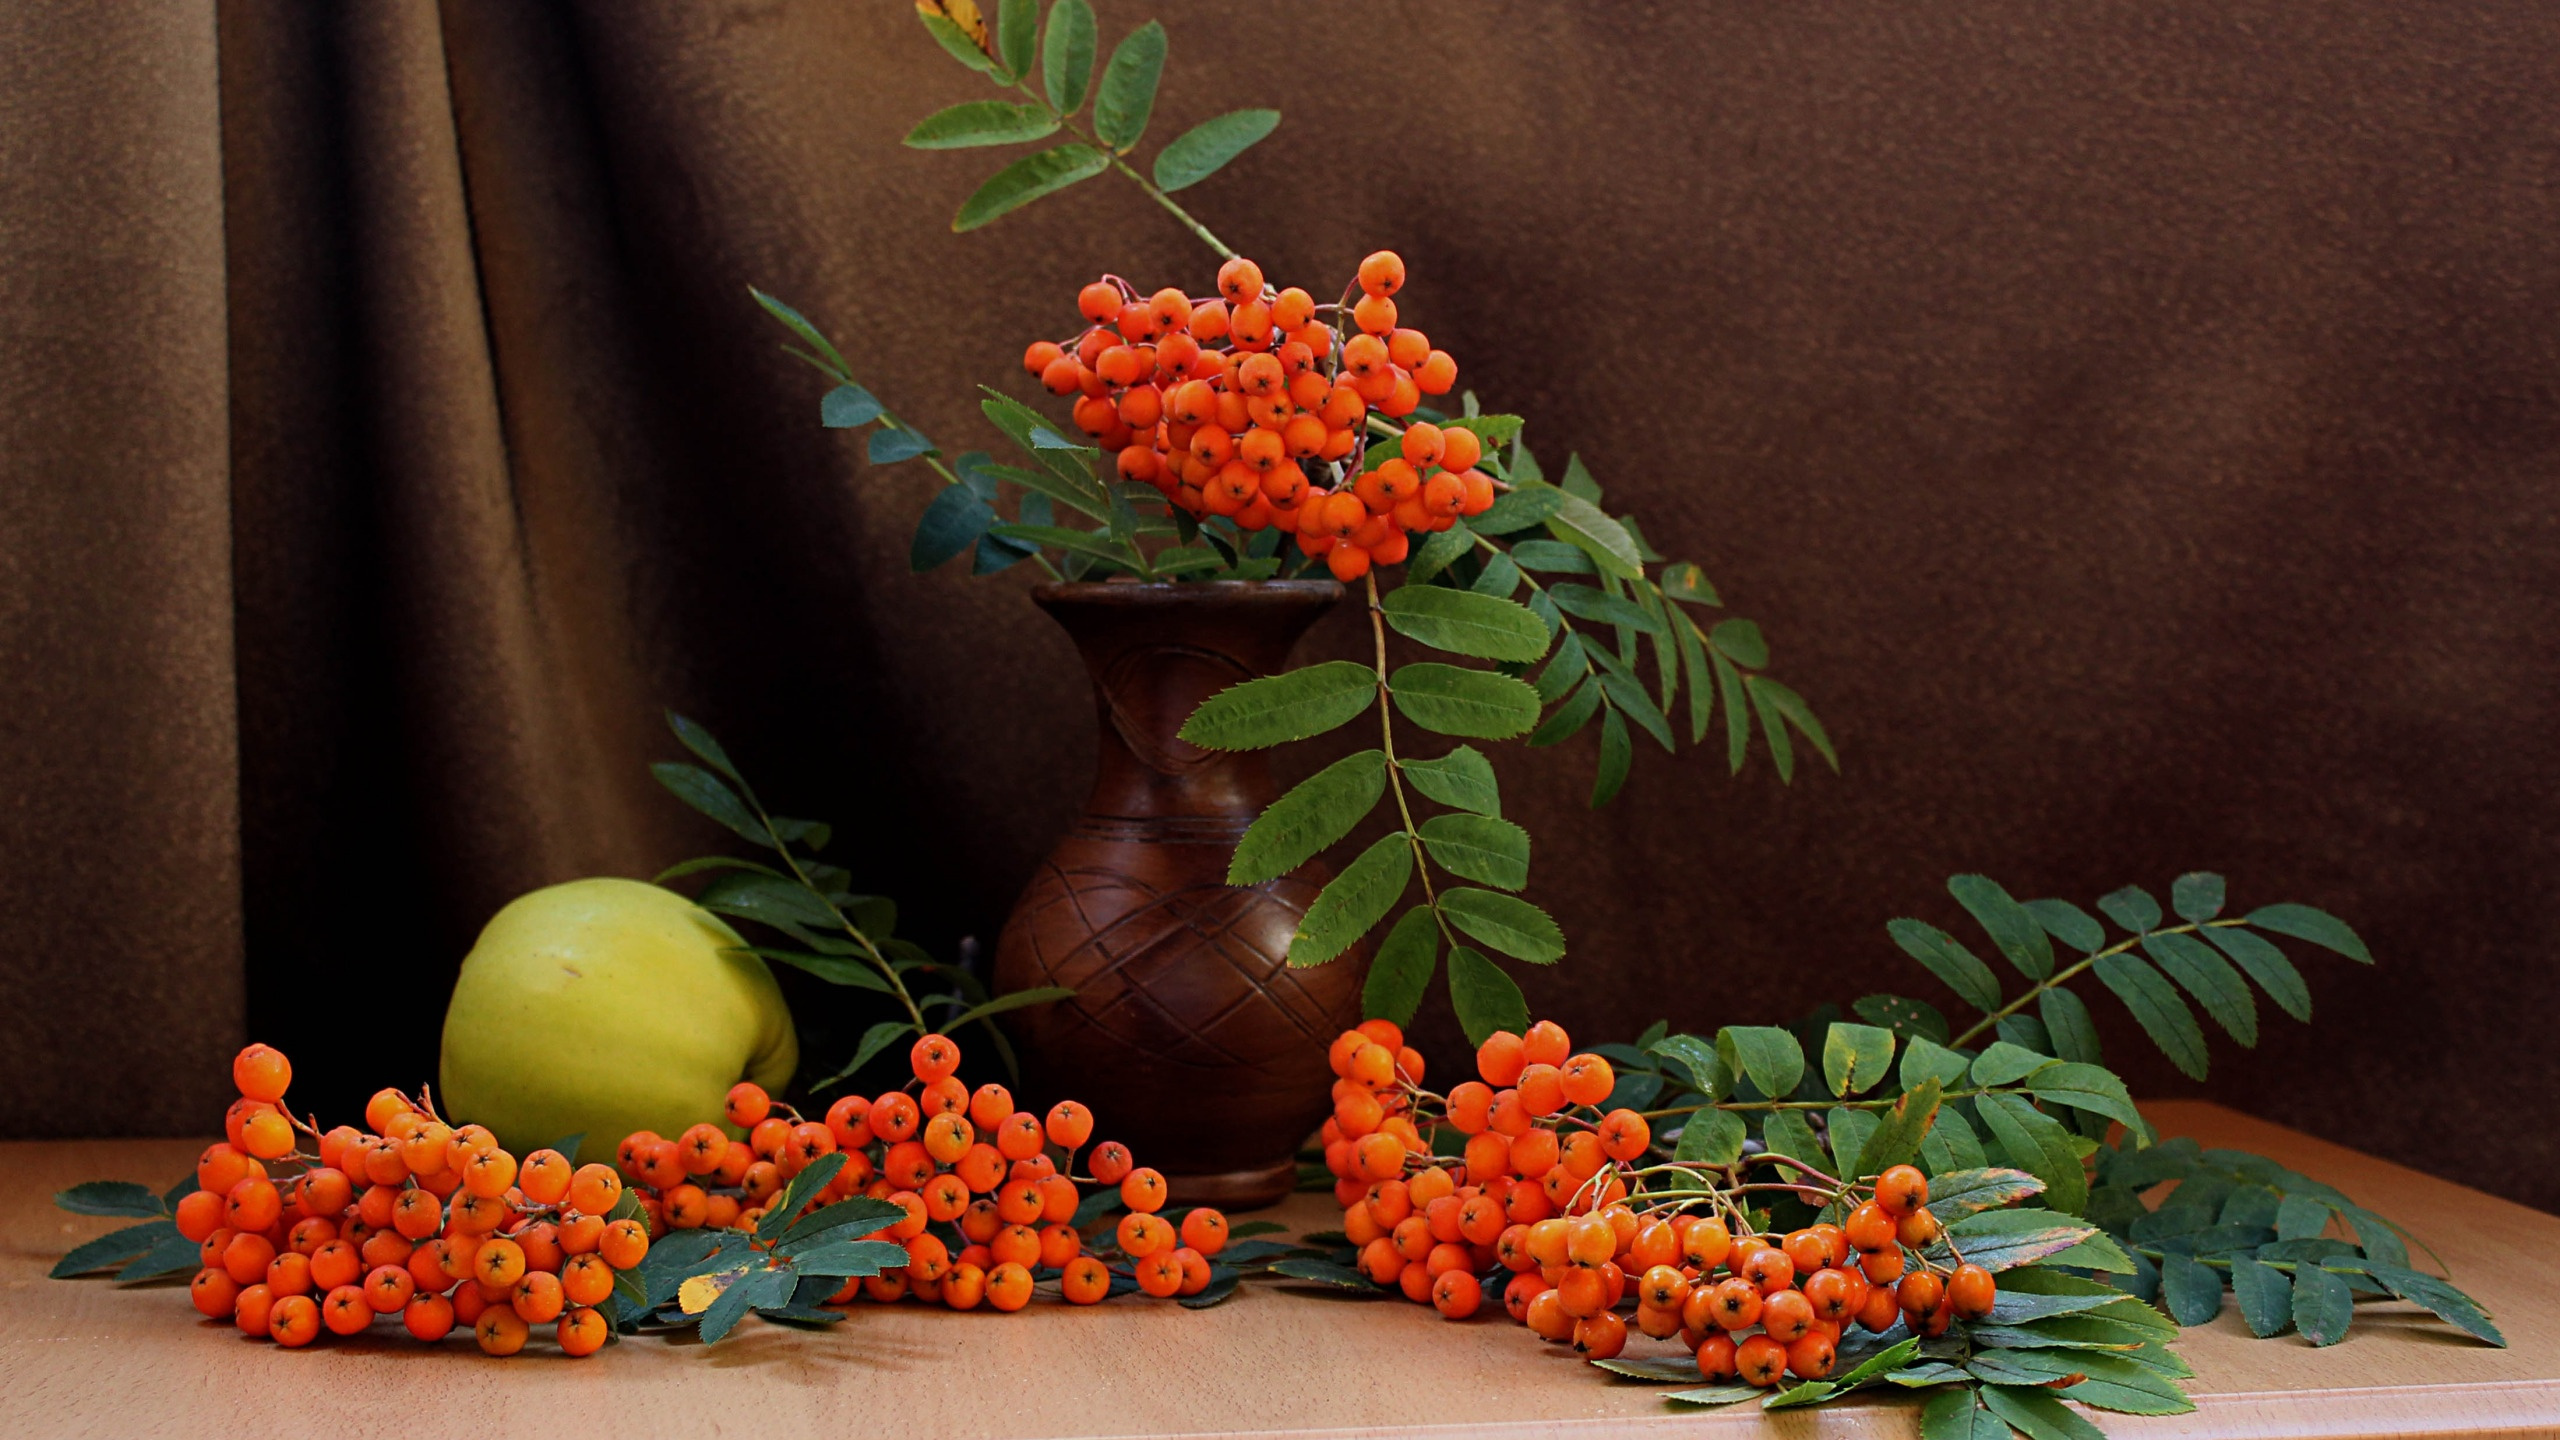 Berries On A Branch background wallpaper